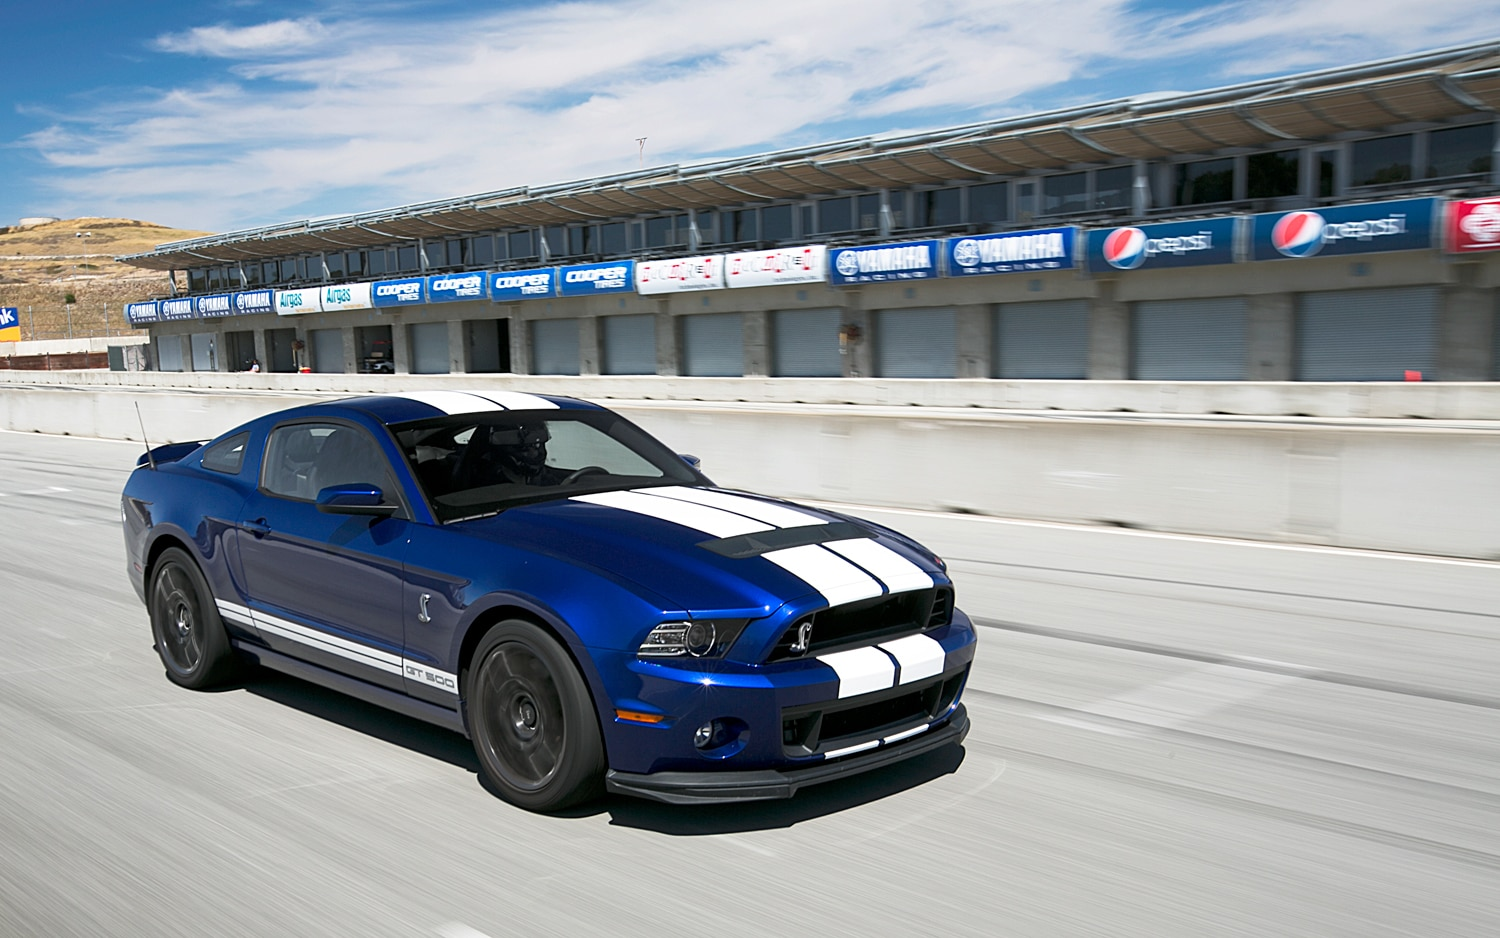 What Is The Horse Power On The 2015 Mustang Super Snake